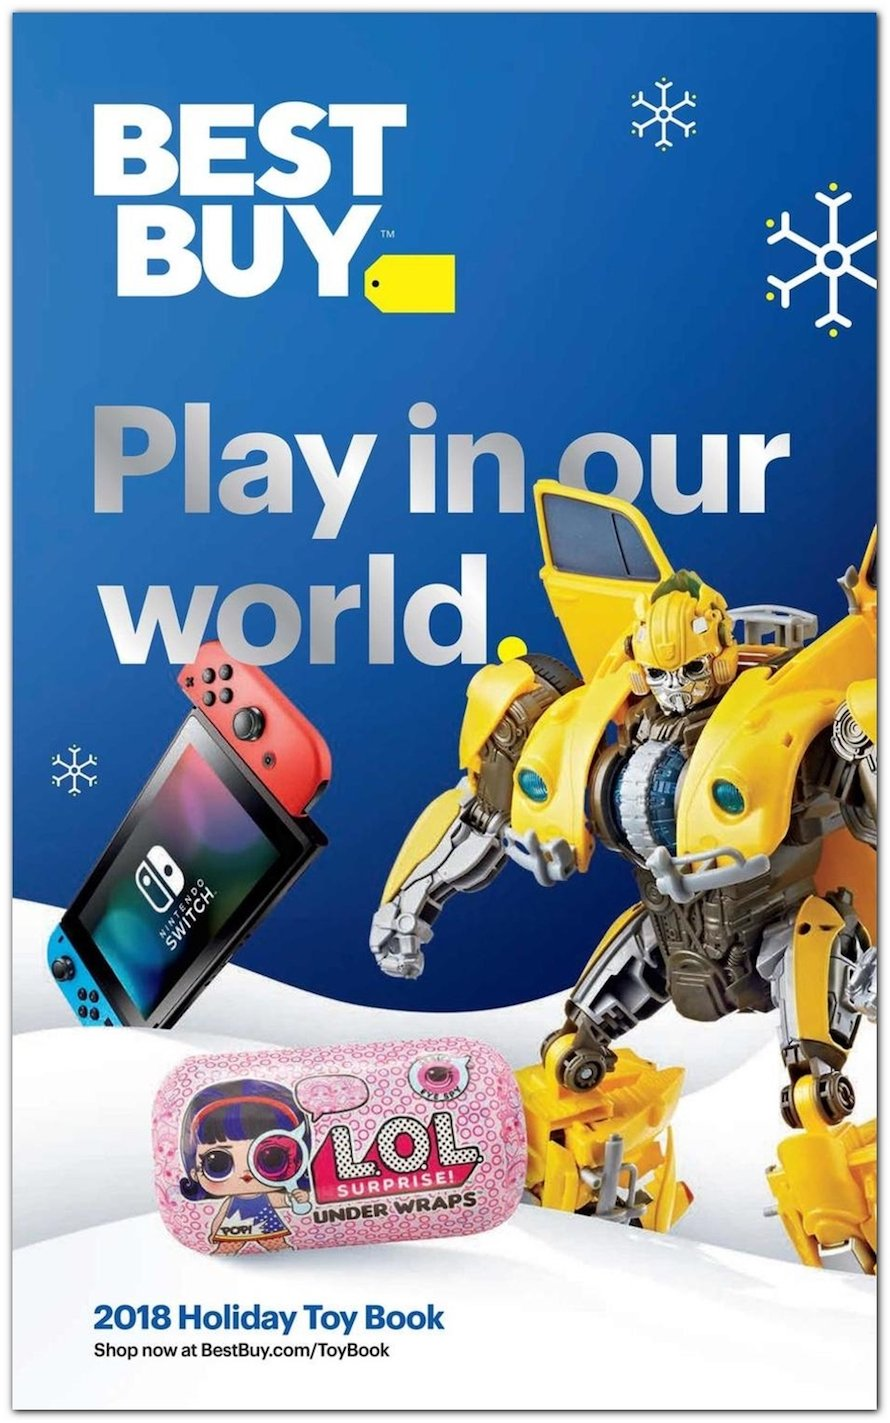 The 2018 Best Buy Holiday Toy Book Is Available